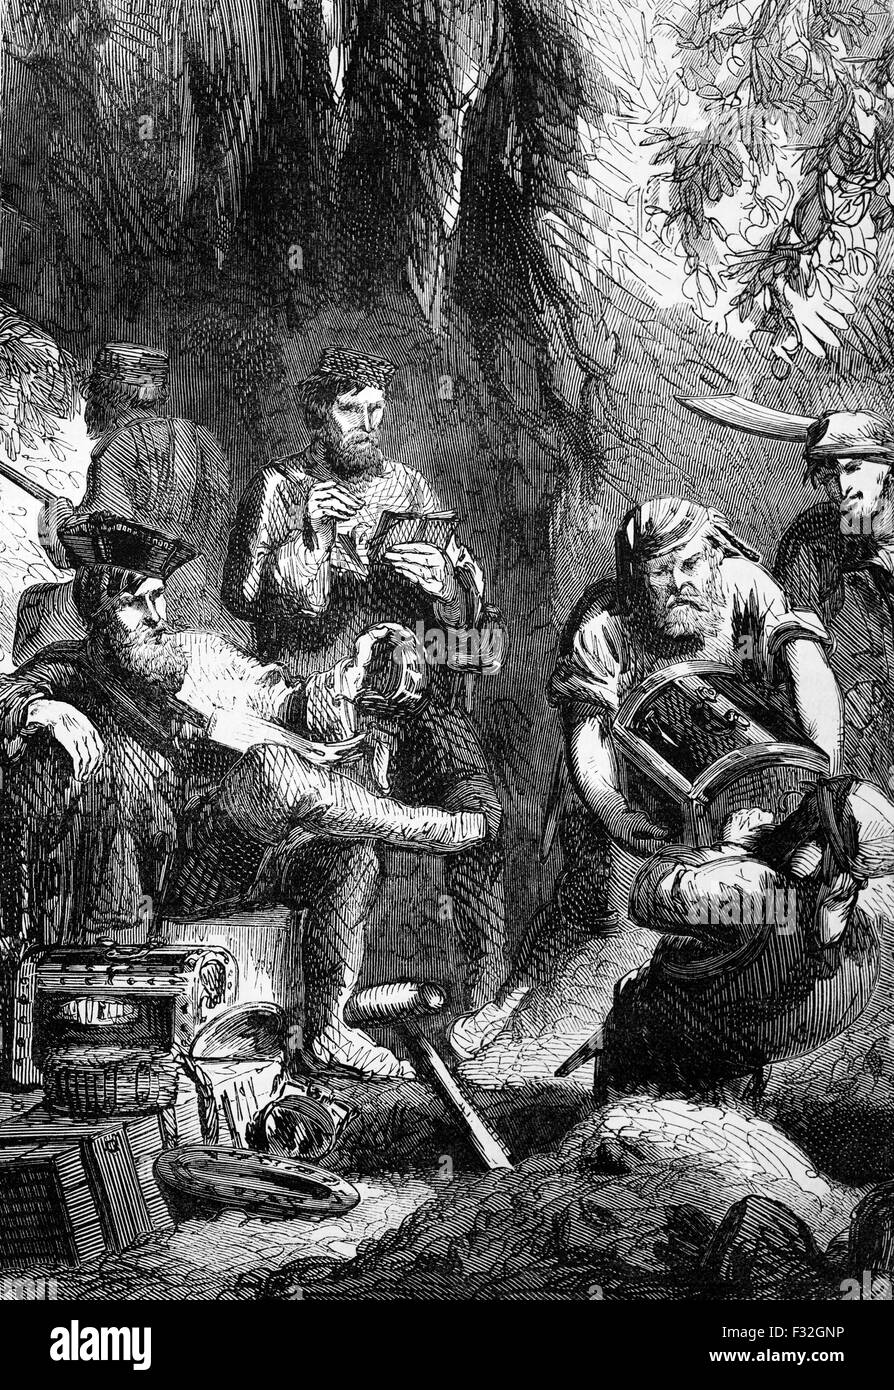 William 'Captain' Kidd (1645–1701) watching his crew conceal treasure in a cavern. He was a Scottish sailor - Stock Image